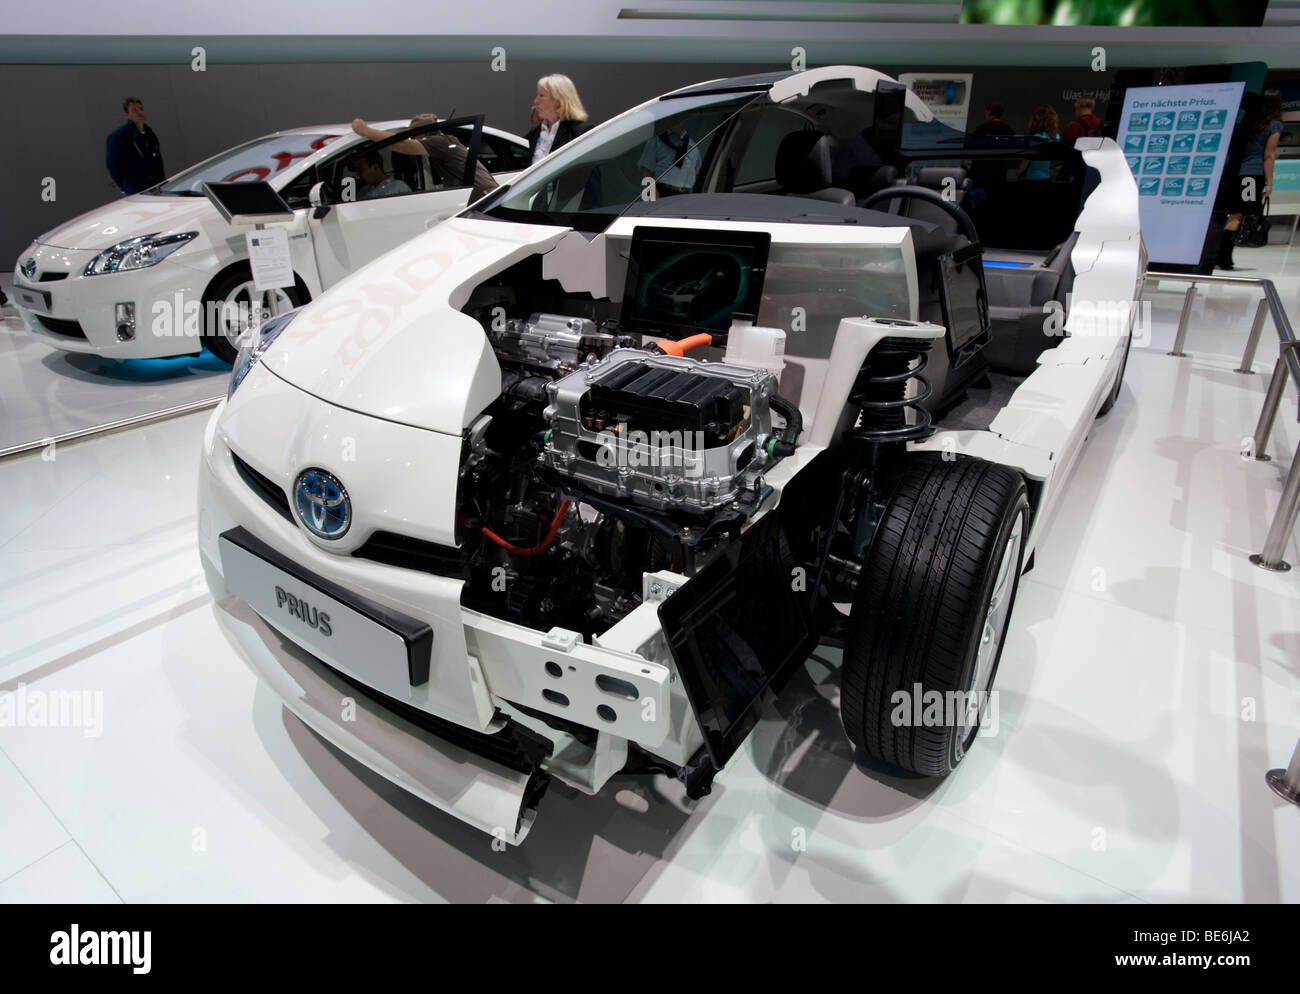 Cut away model of the new Toyota Prius hybrid saloon car at the Frankfurt Motor Show 2009 - Stock Image